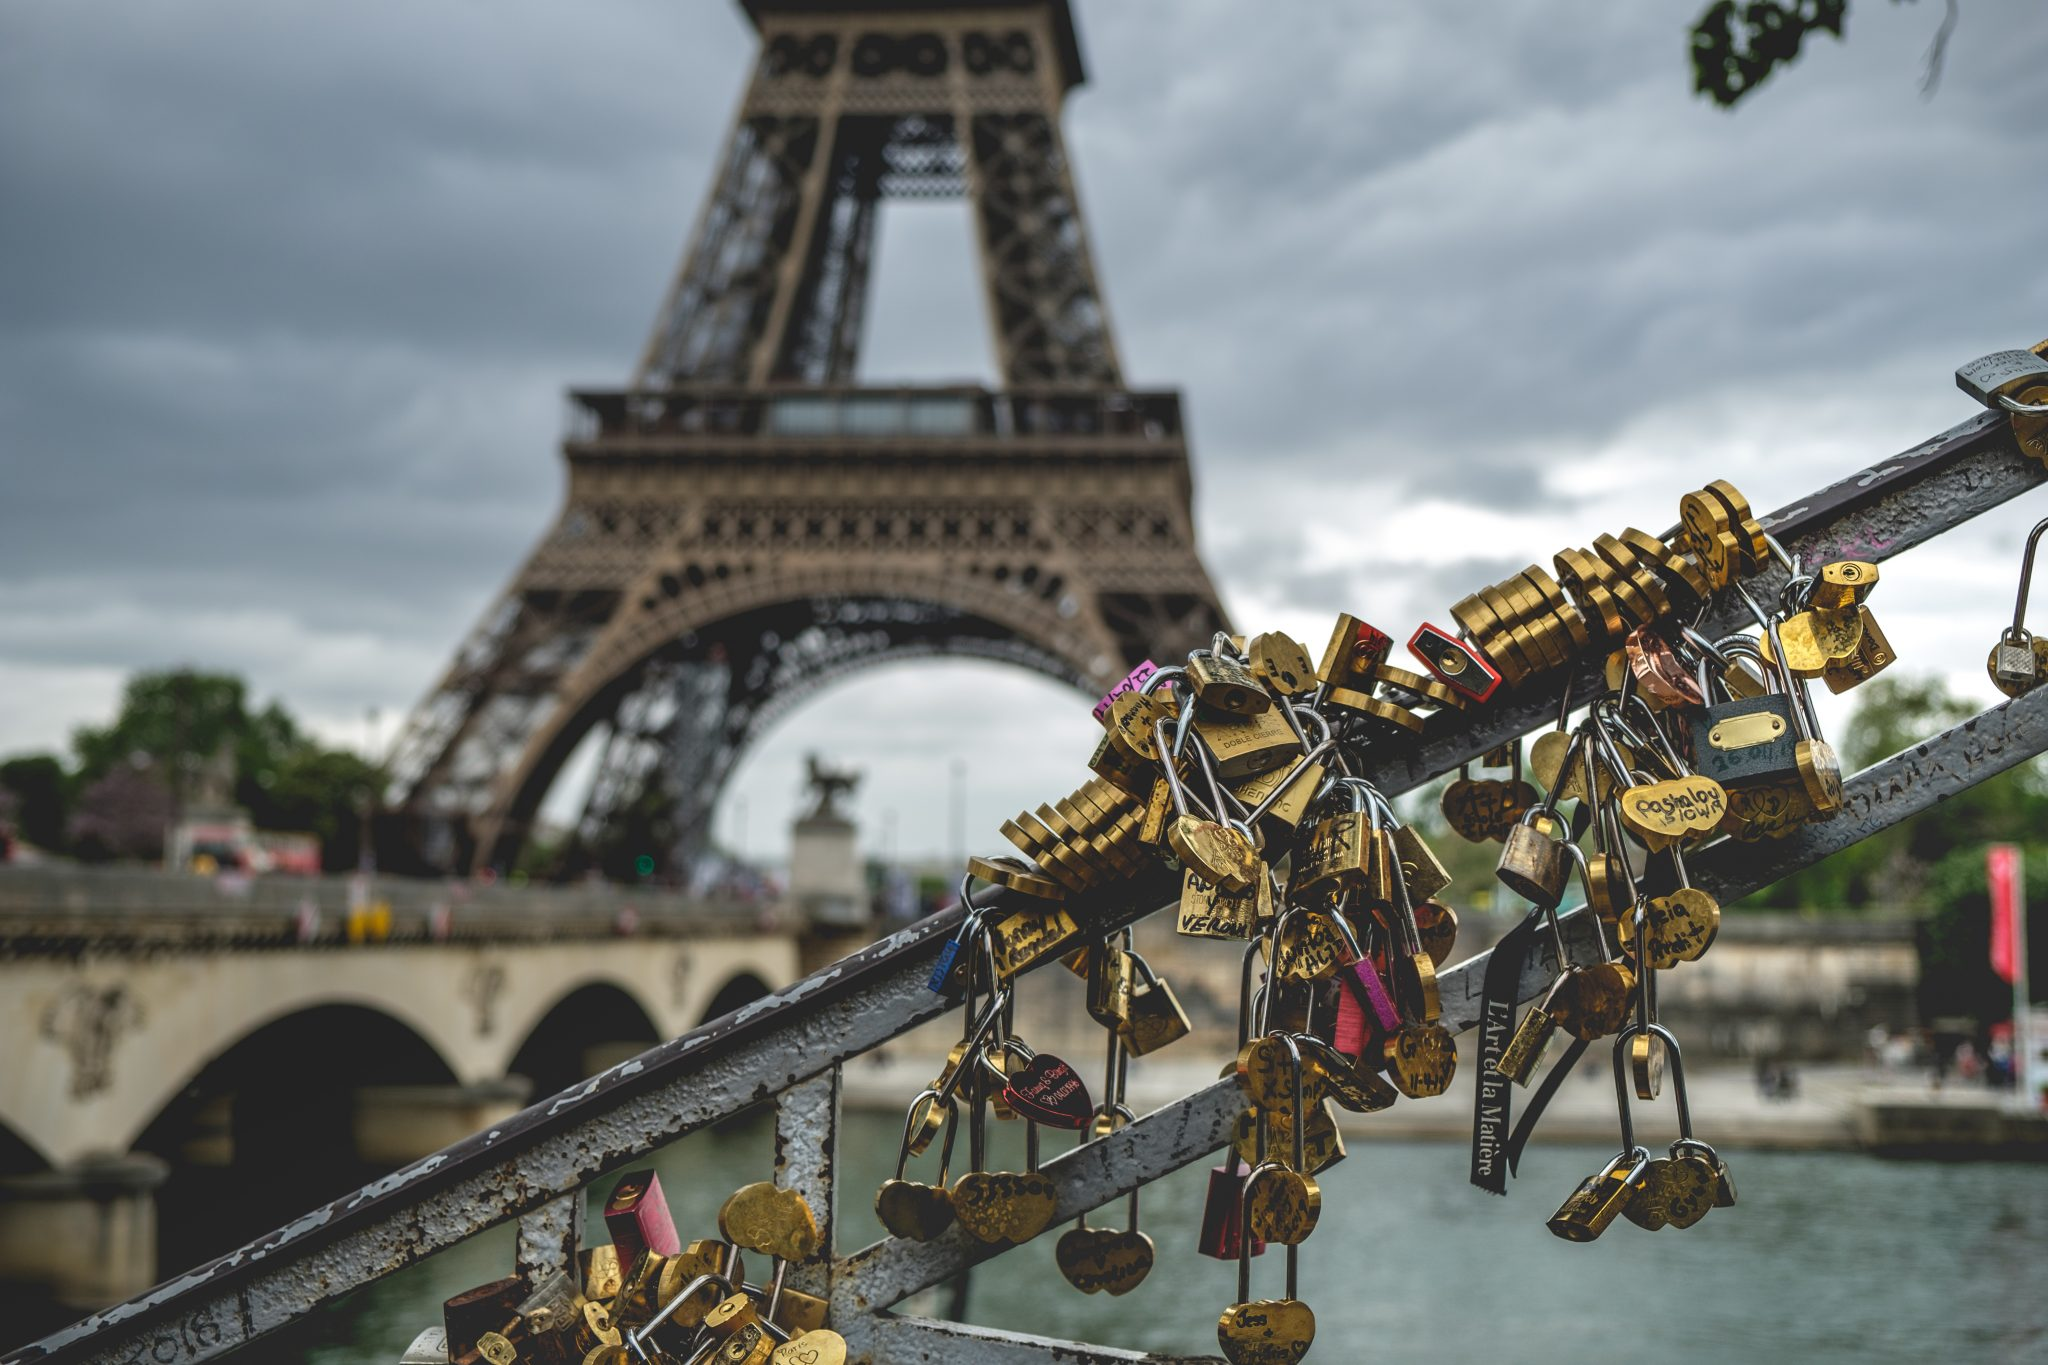 Lockpads on a hand rail next to the Seine with the eiffel tower in the background photo by Jo Kassis